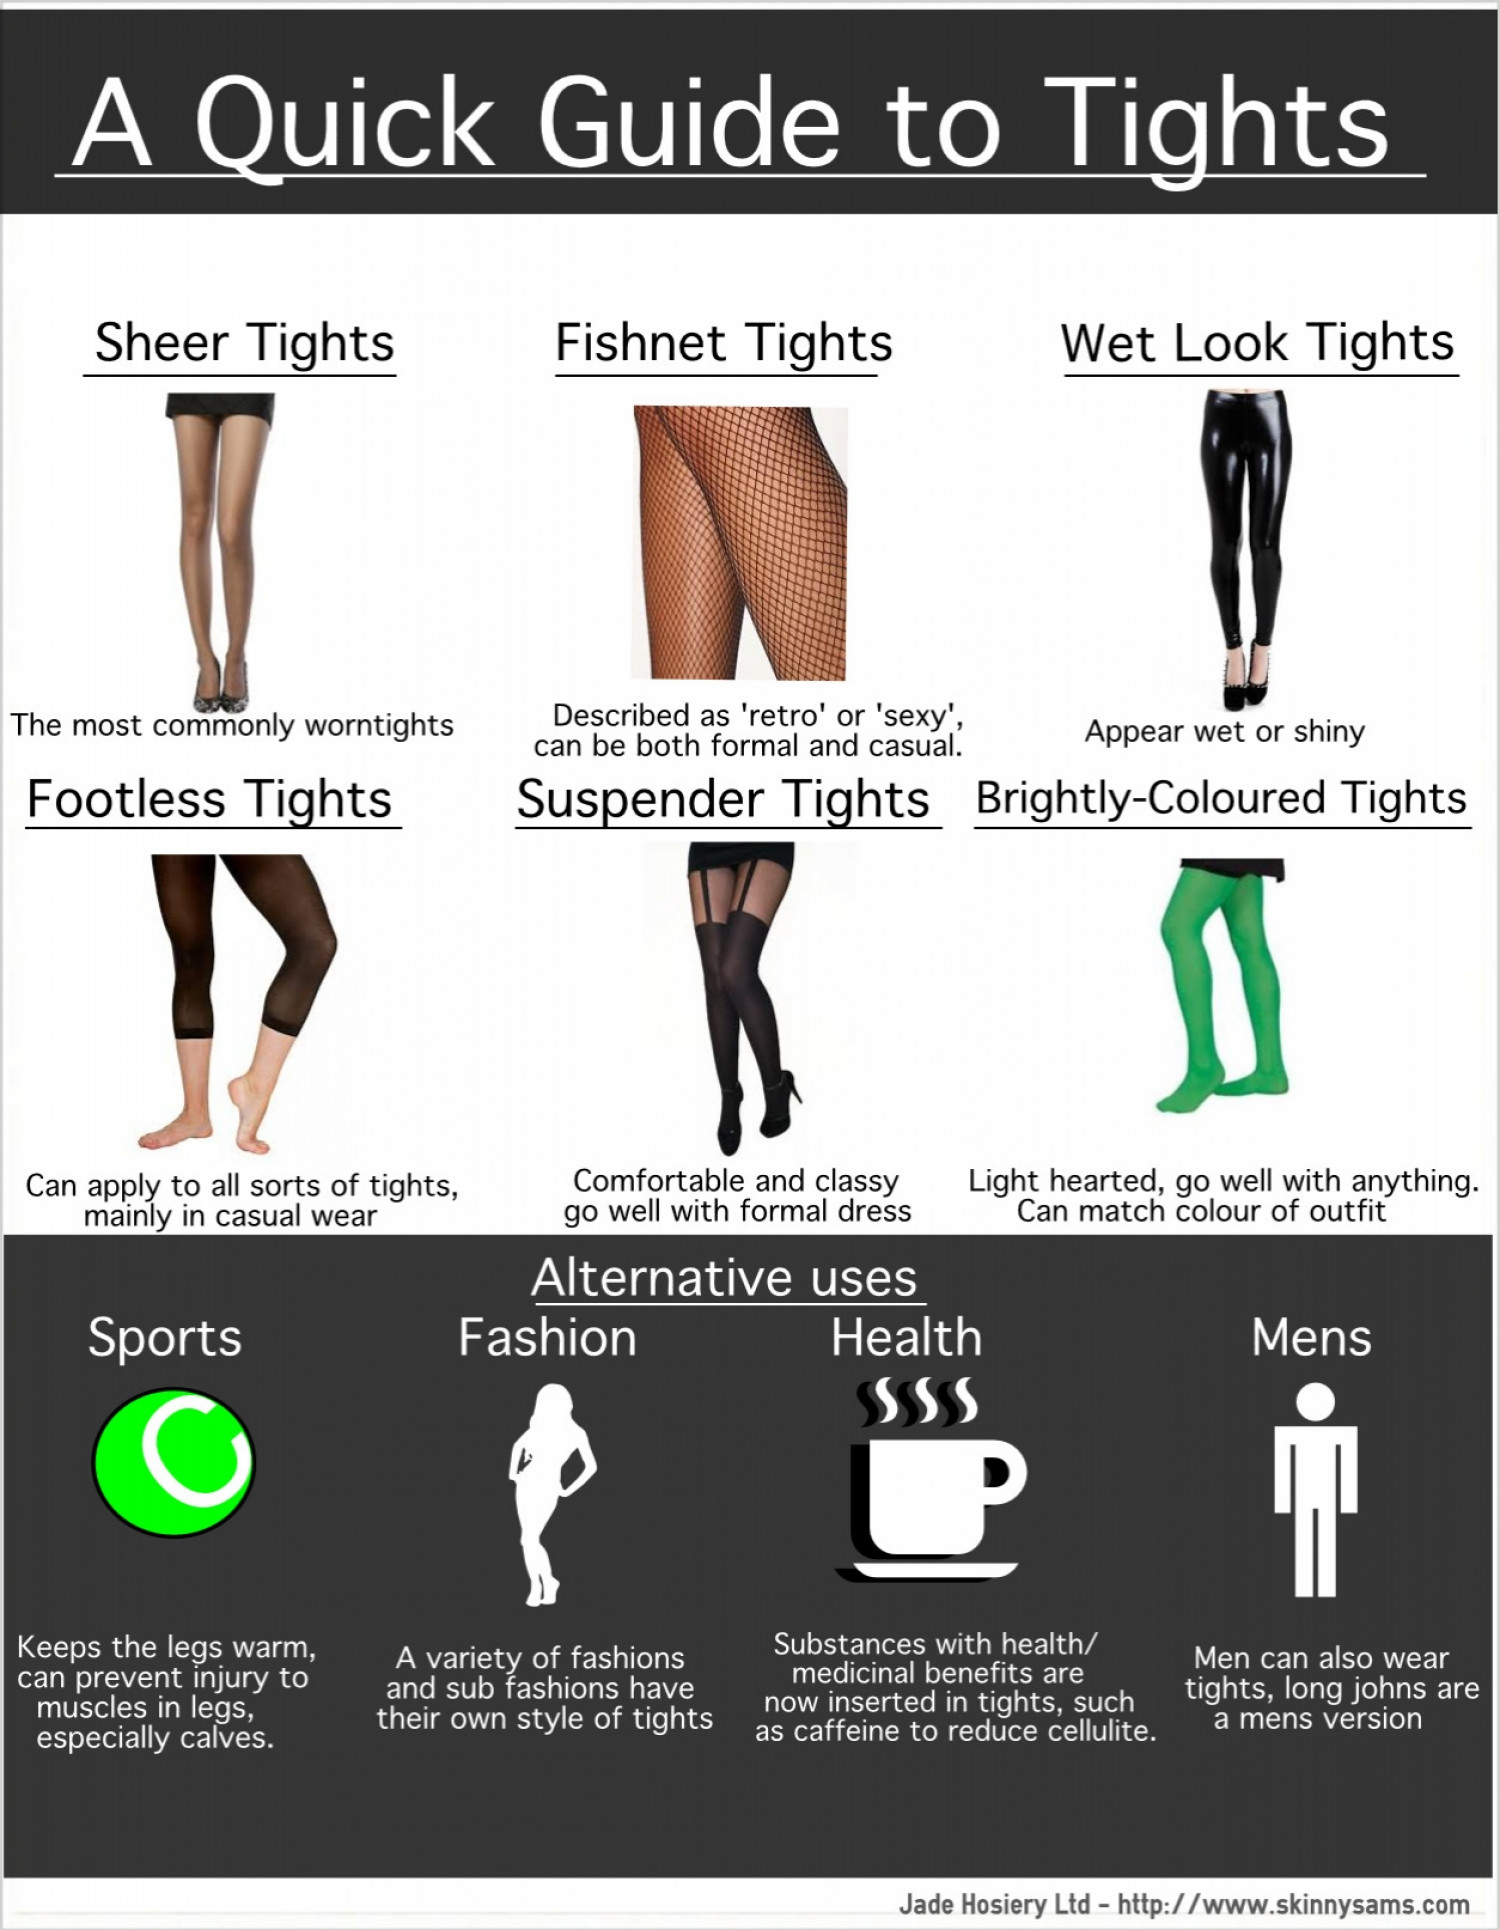 A quick guide to Tights Infographic